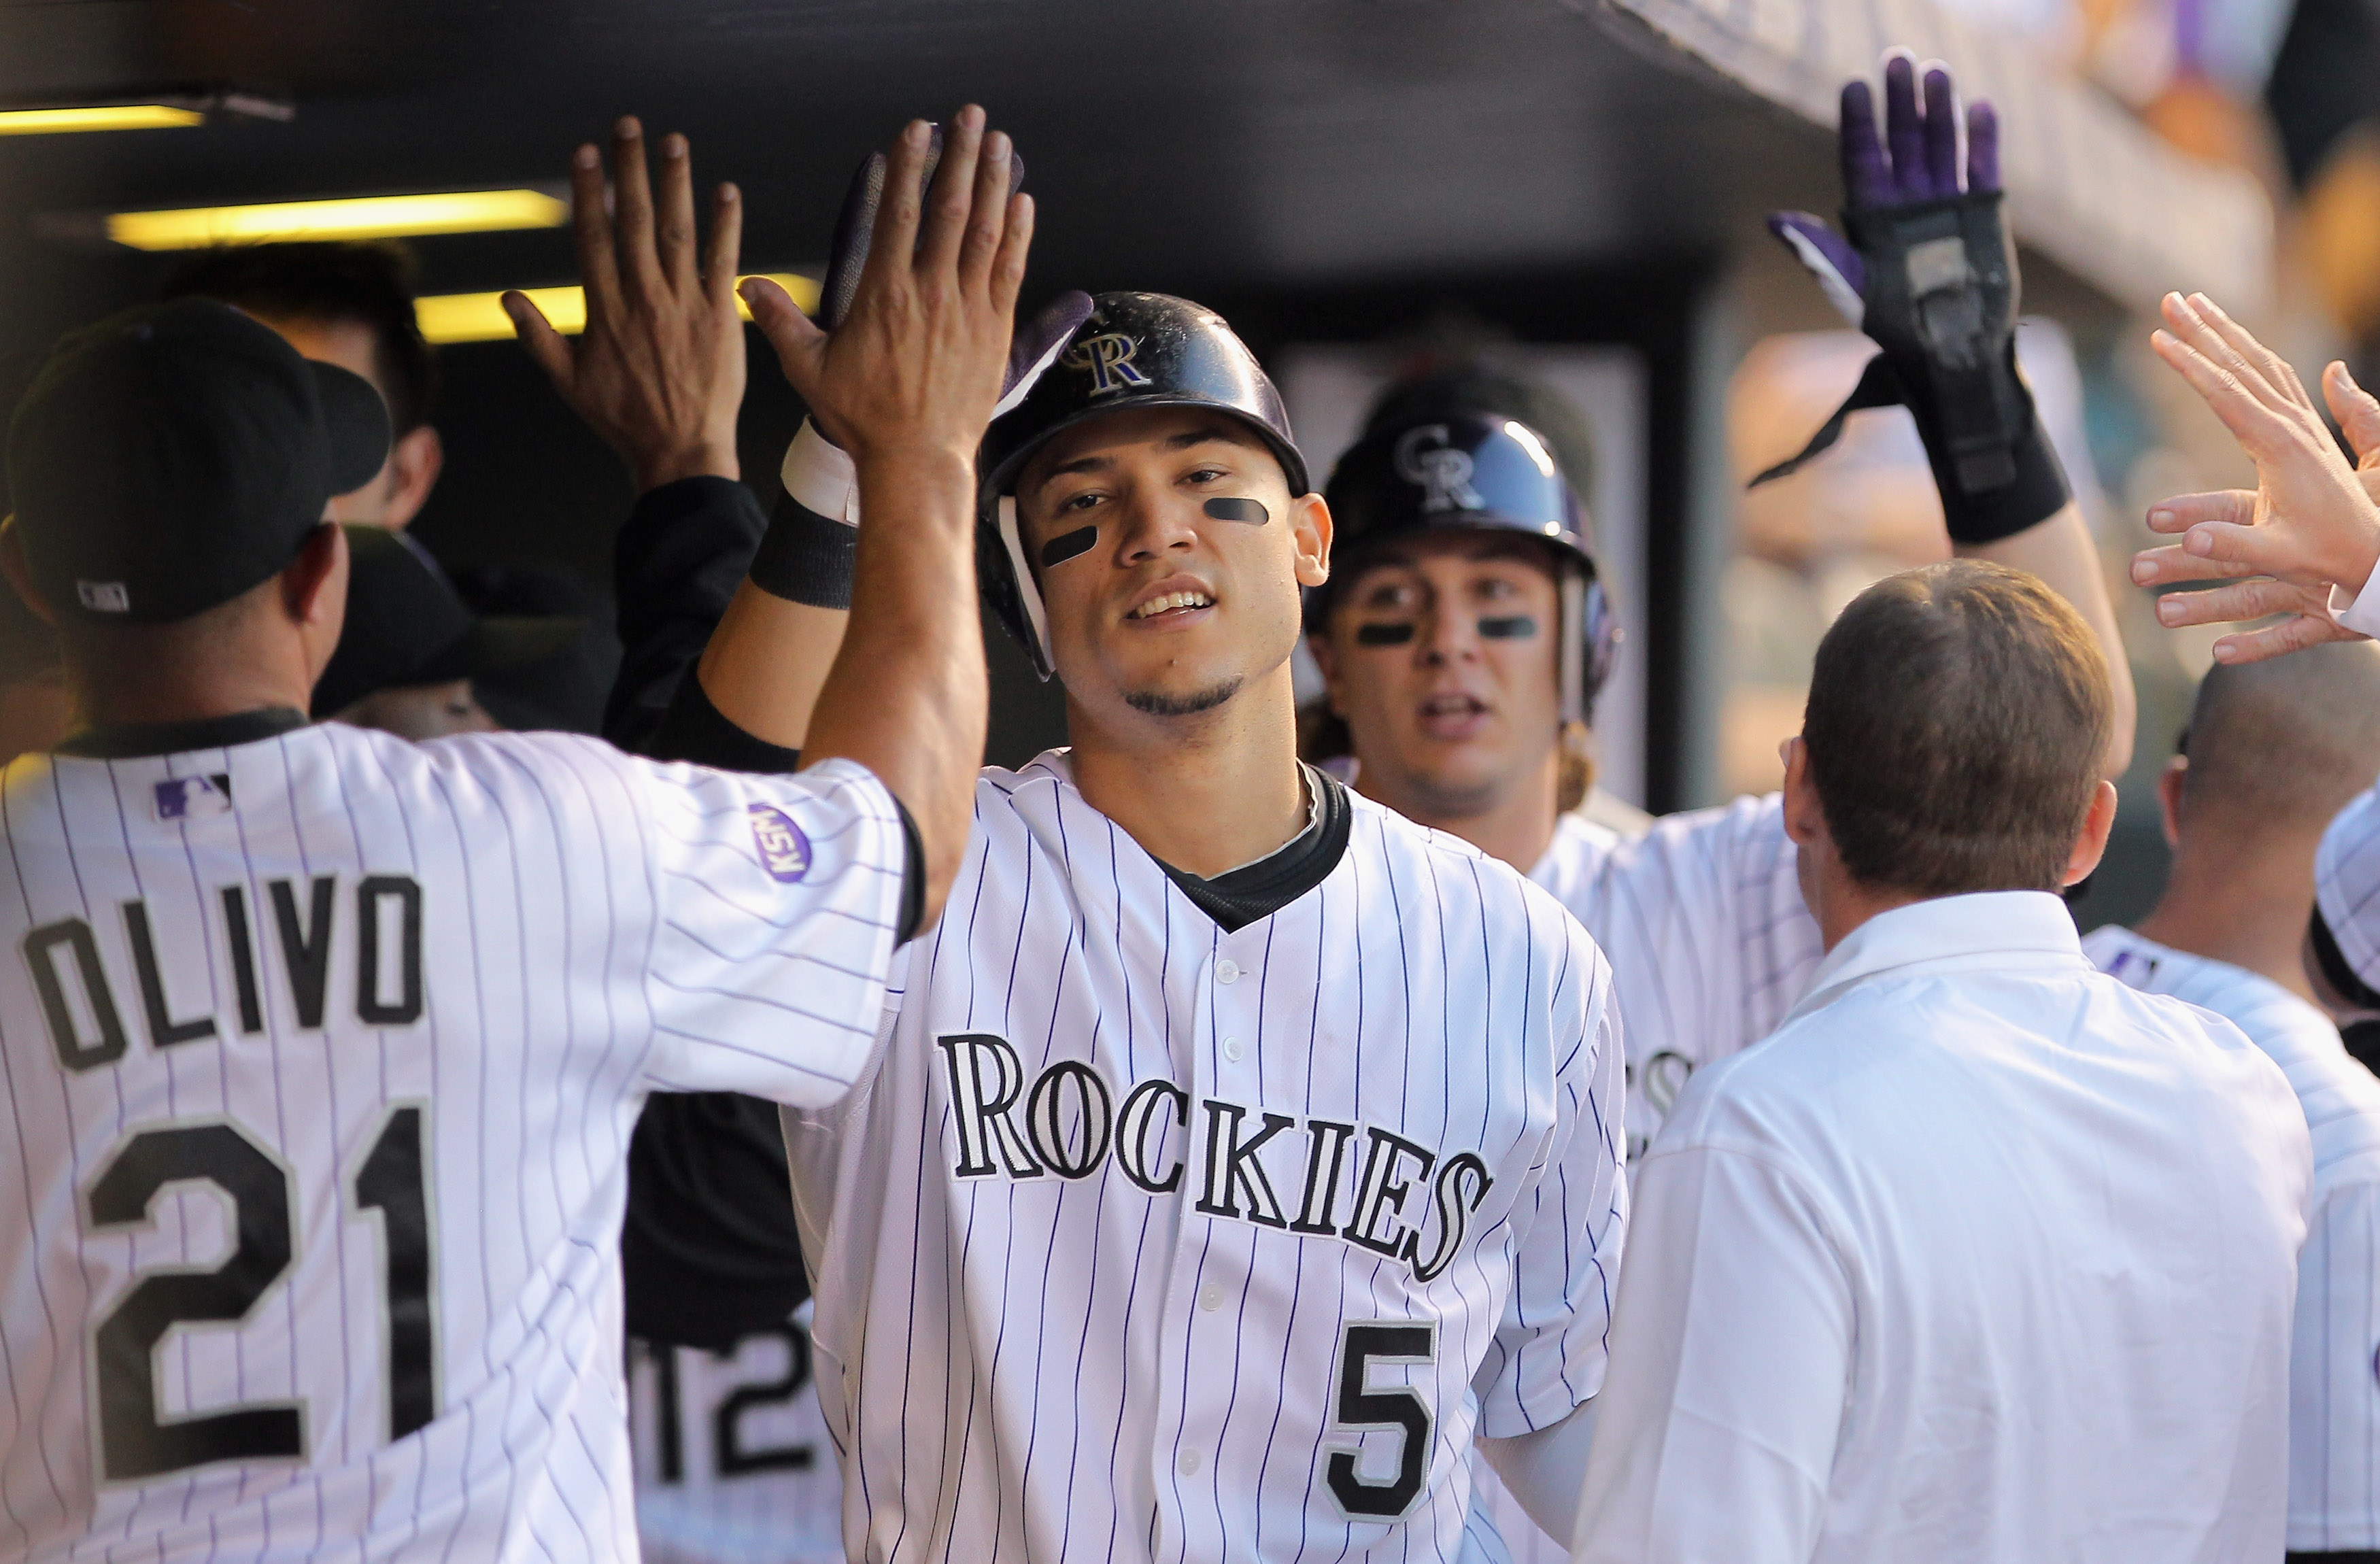 DENVER - SEPTEMBER 25:  Carlos Gonzalez #5 and Troy Tulowitzki #2 of the Colorado Rockies celebrate in the dugout after scoring on a Melvin Mora single to give the Rockies a 2-1 lead over the San Francisco Giants in the first inning at Coors Field on Sept